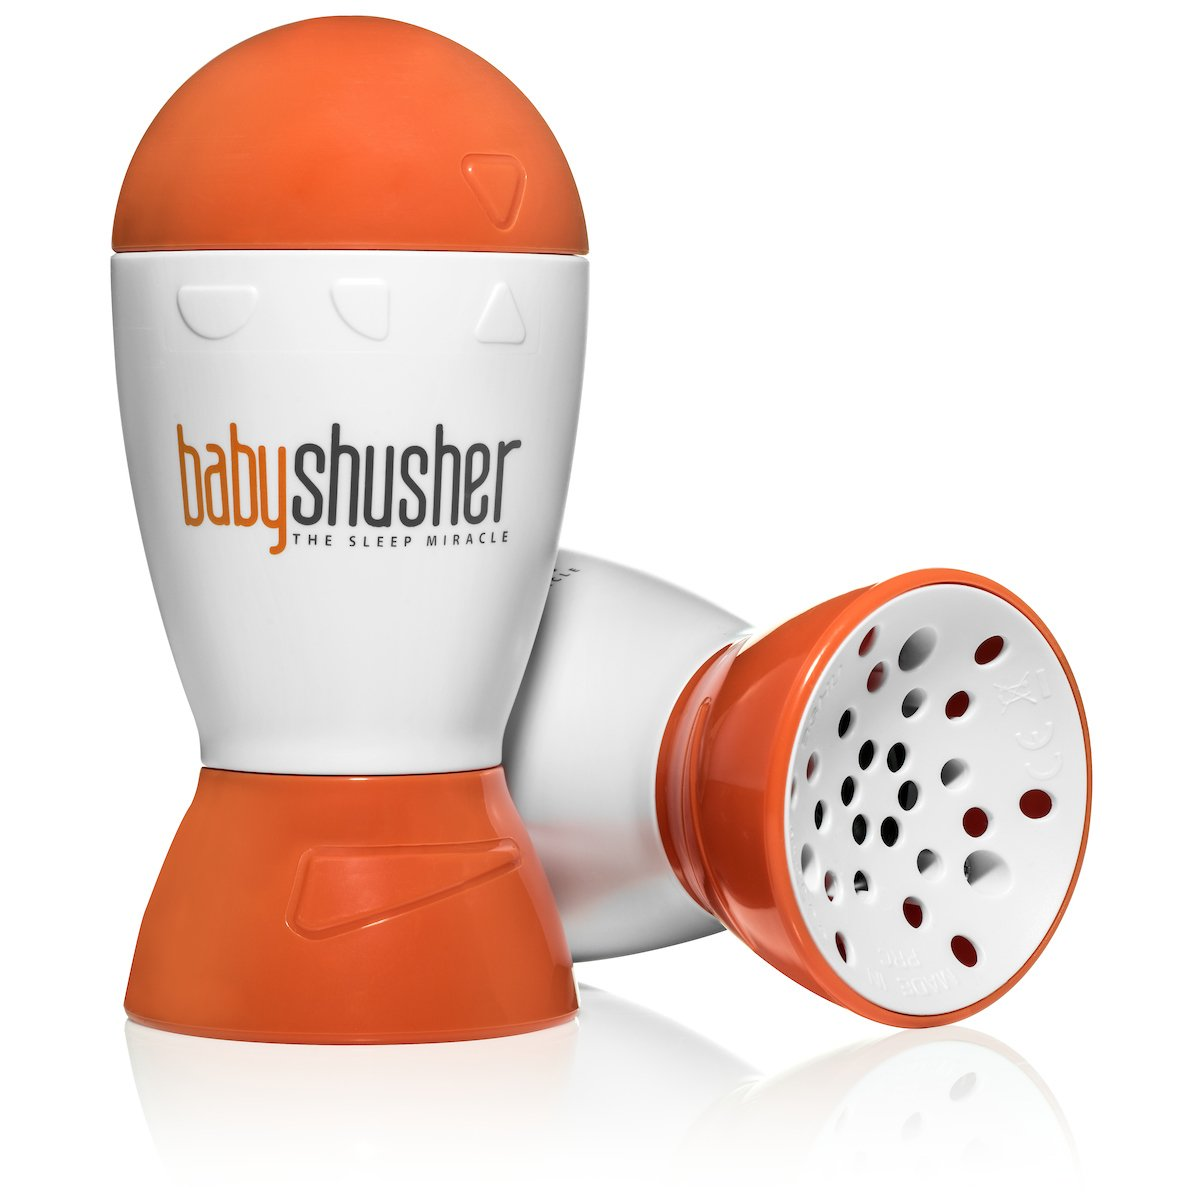 The Baby Shusher Sleep Miracle Soother travel product recommended by Meagan Vogt on Lifney.